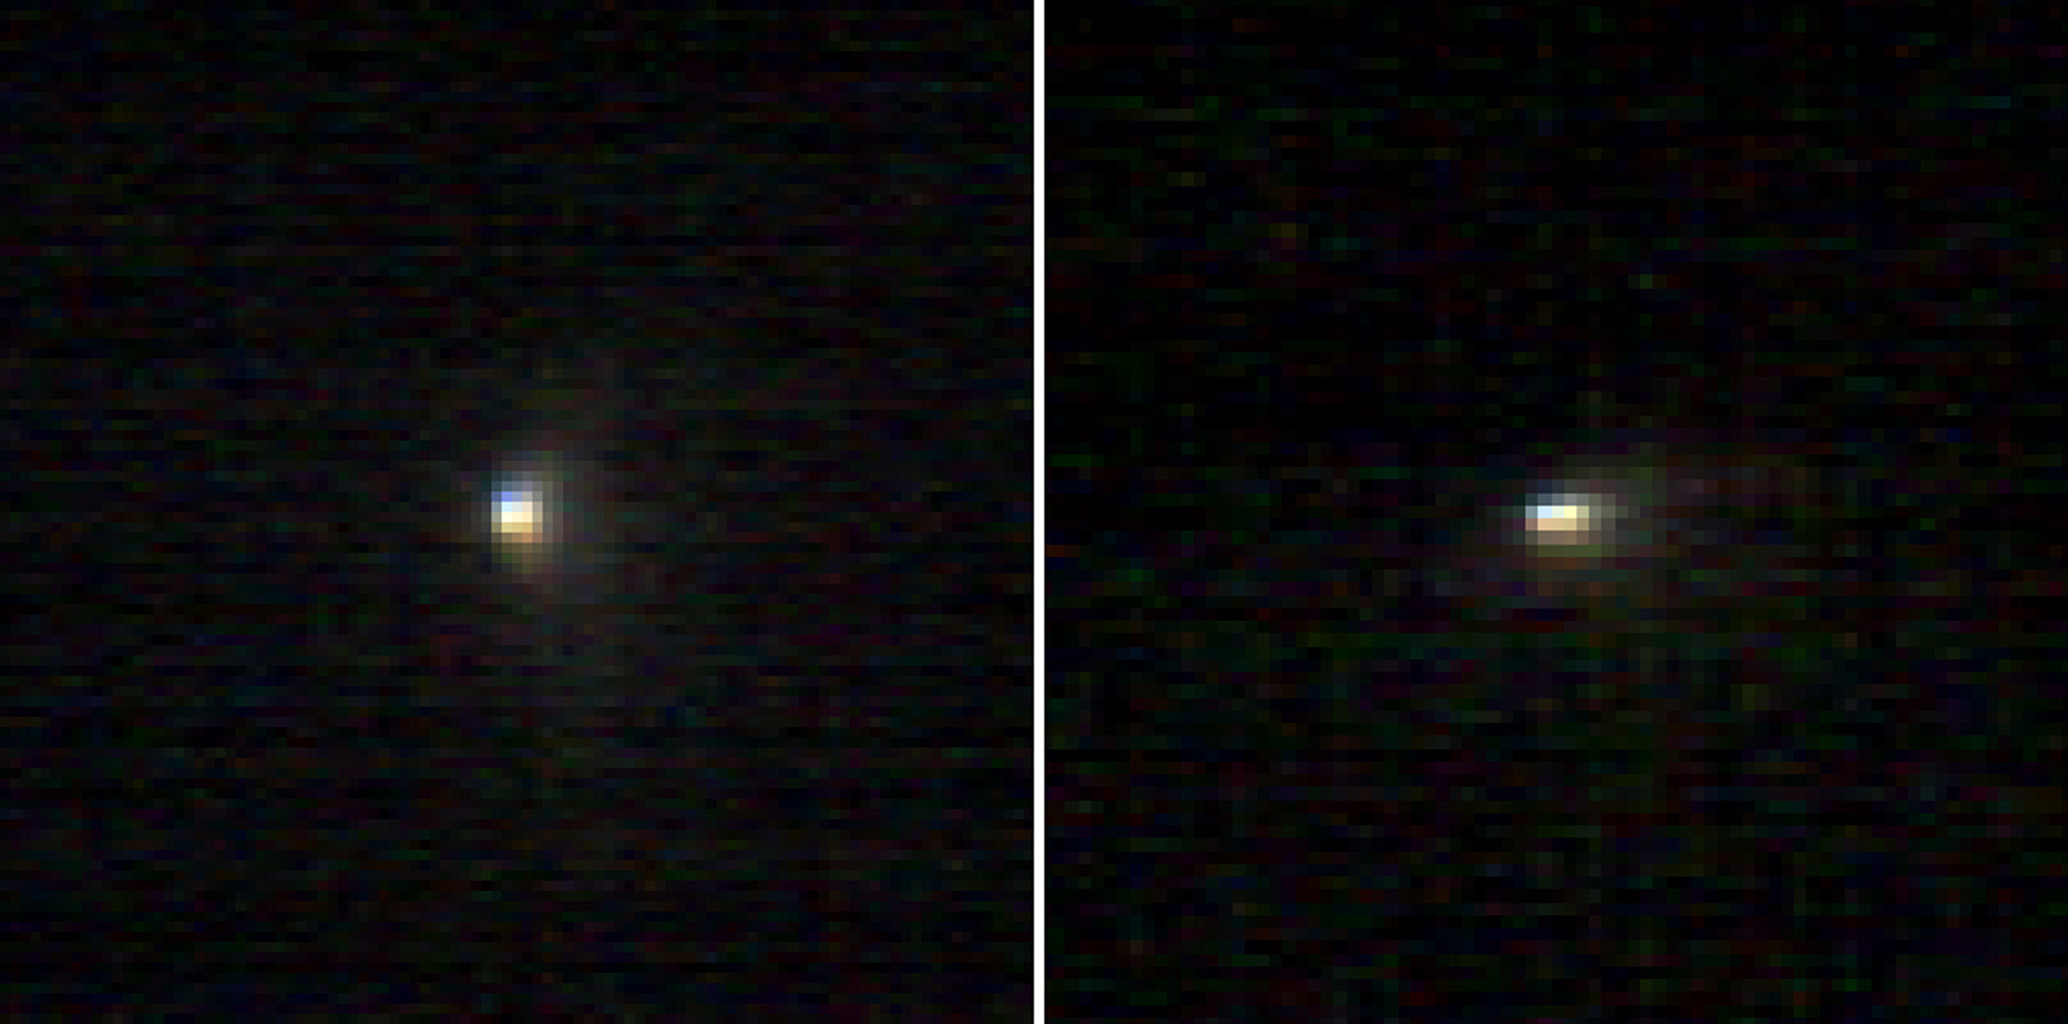 These two infrared images of comet C/2013 A1 Siding Spring were taken by the Compact Reconnaissance Imaging Spectrometer for Mars (CRISM) aboard NASA's Mars Reconnaissance Orbiter on Oct. 19, 2014.